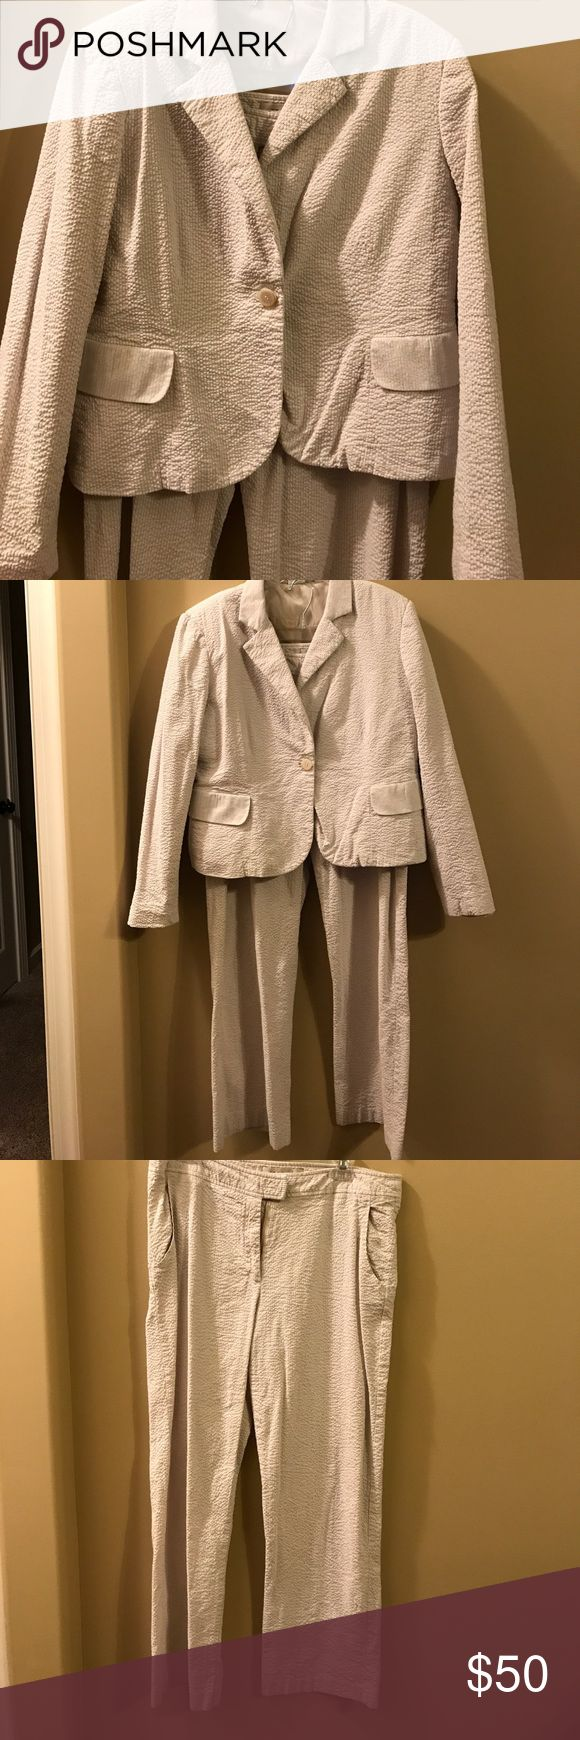 """Tan/cream seersucker Pant Suit Pants size 14 with 29"""" inseam - Jacket size 14 with lining. Harve Benard Pants Trousers"""